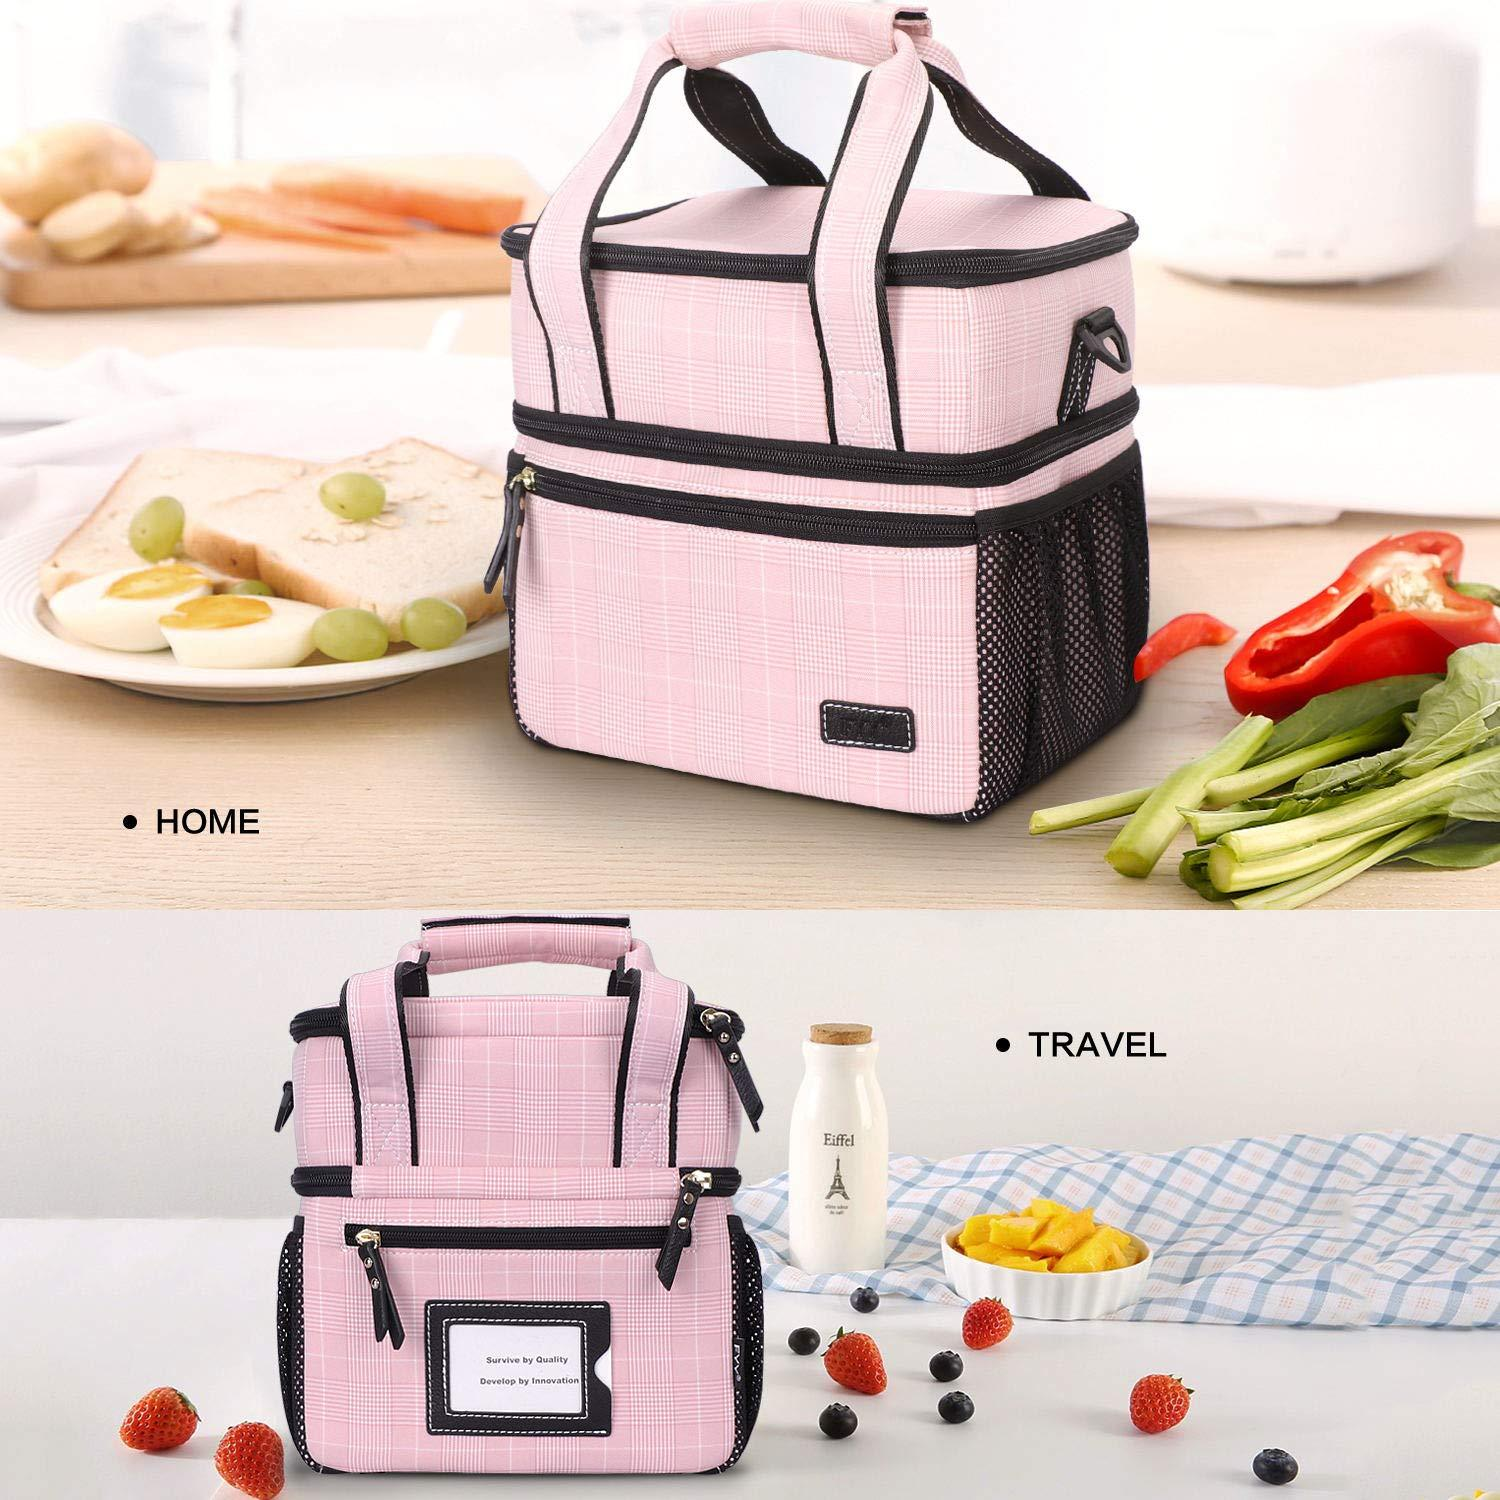 Insulated Lunch Bag with Handle and Shoulder Strap